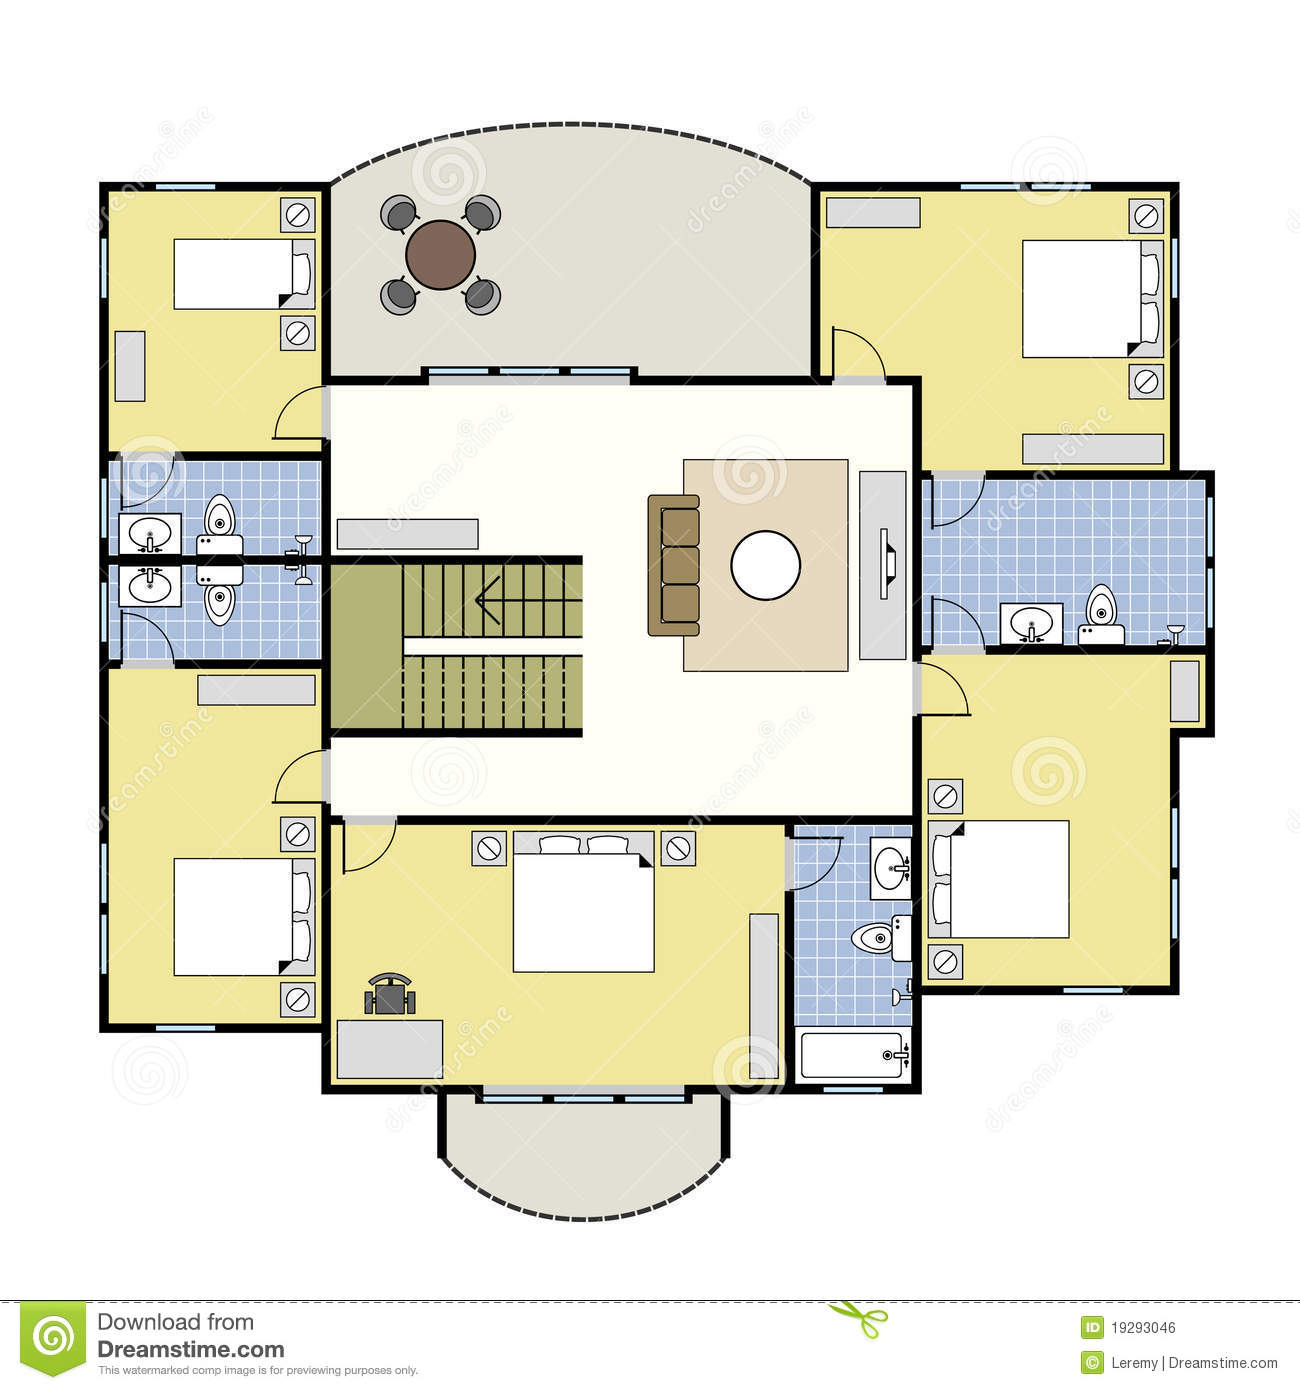 Floorplan architektur plan haus lizenzfreies stockbild for Haus plan bilder